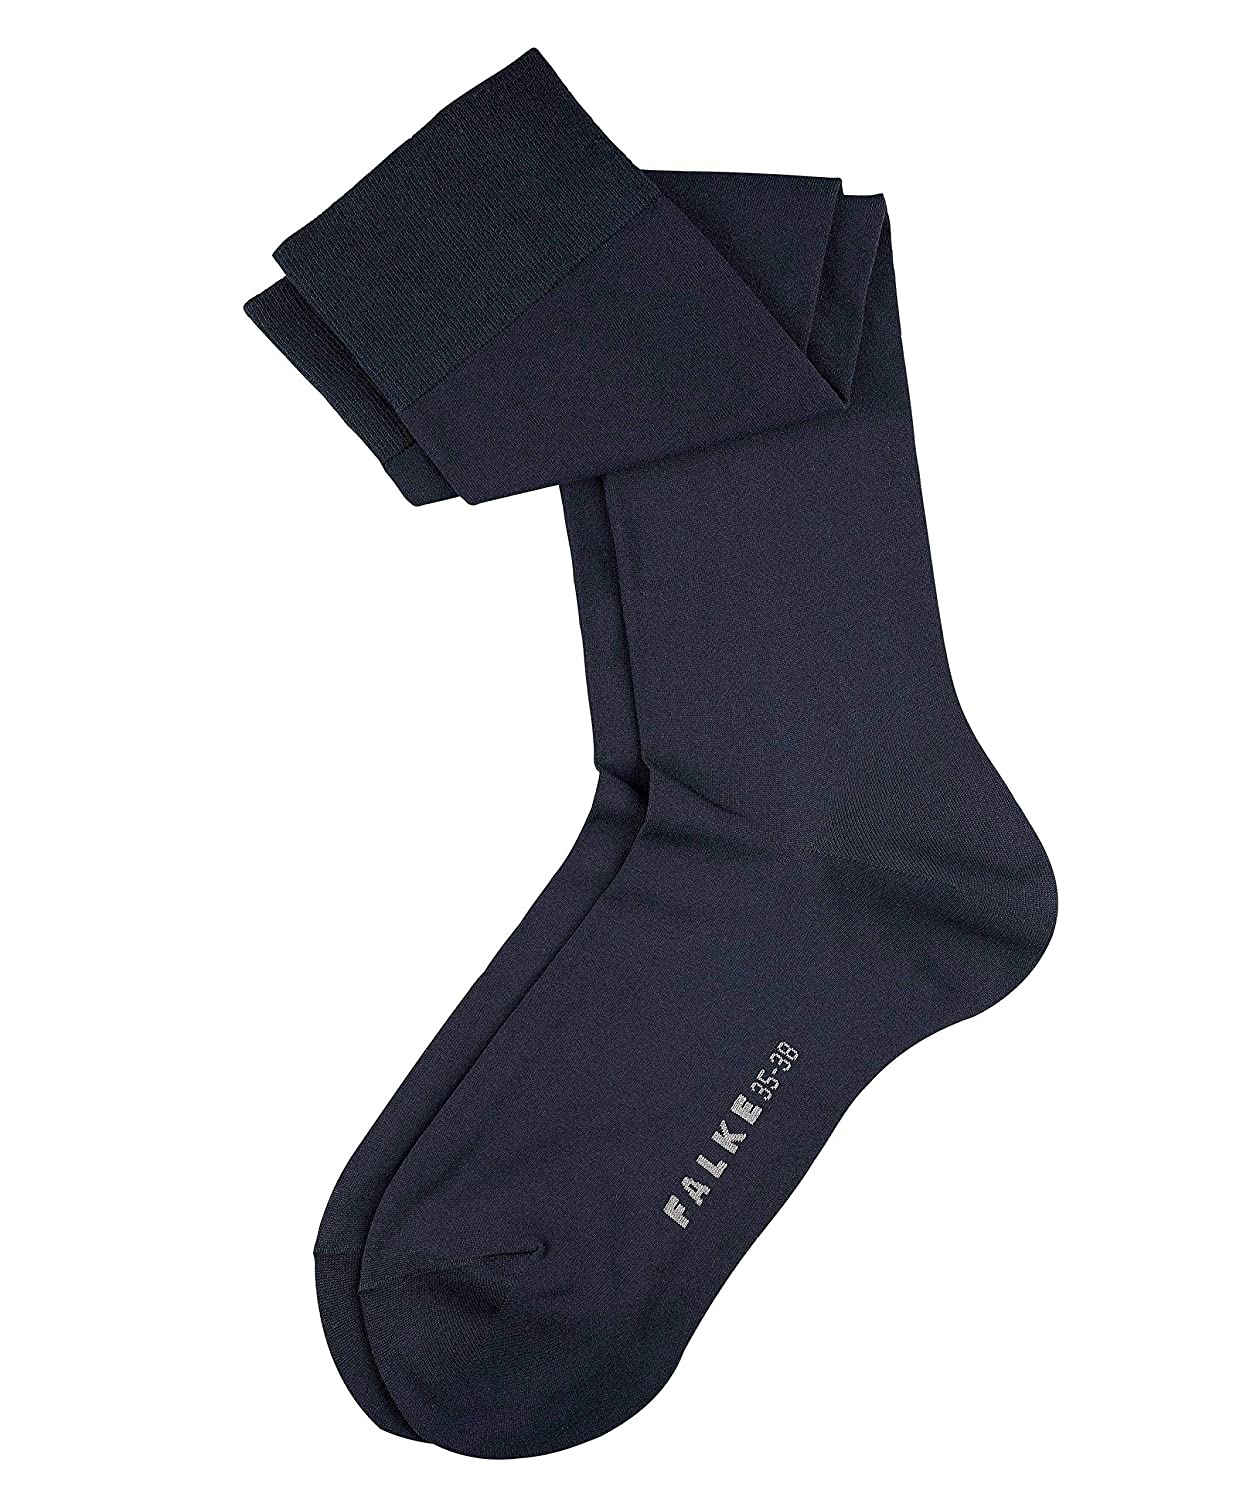 47ee6359c FALKE Women s Cotton Touch Knee-high Socks at Amazon Women s Clothing store